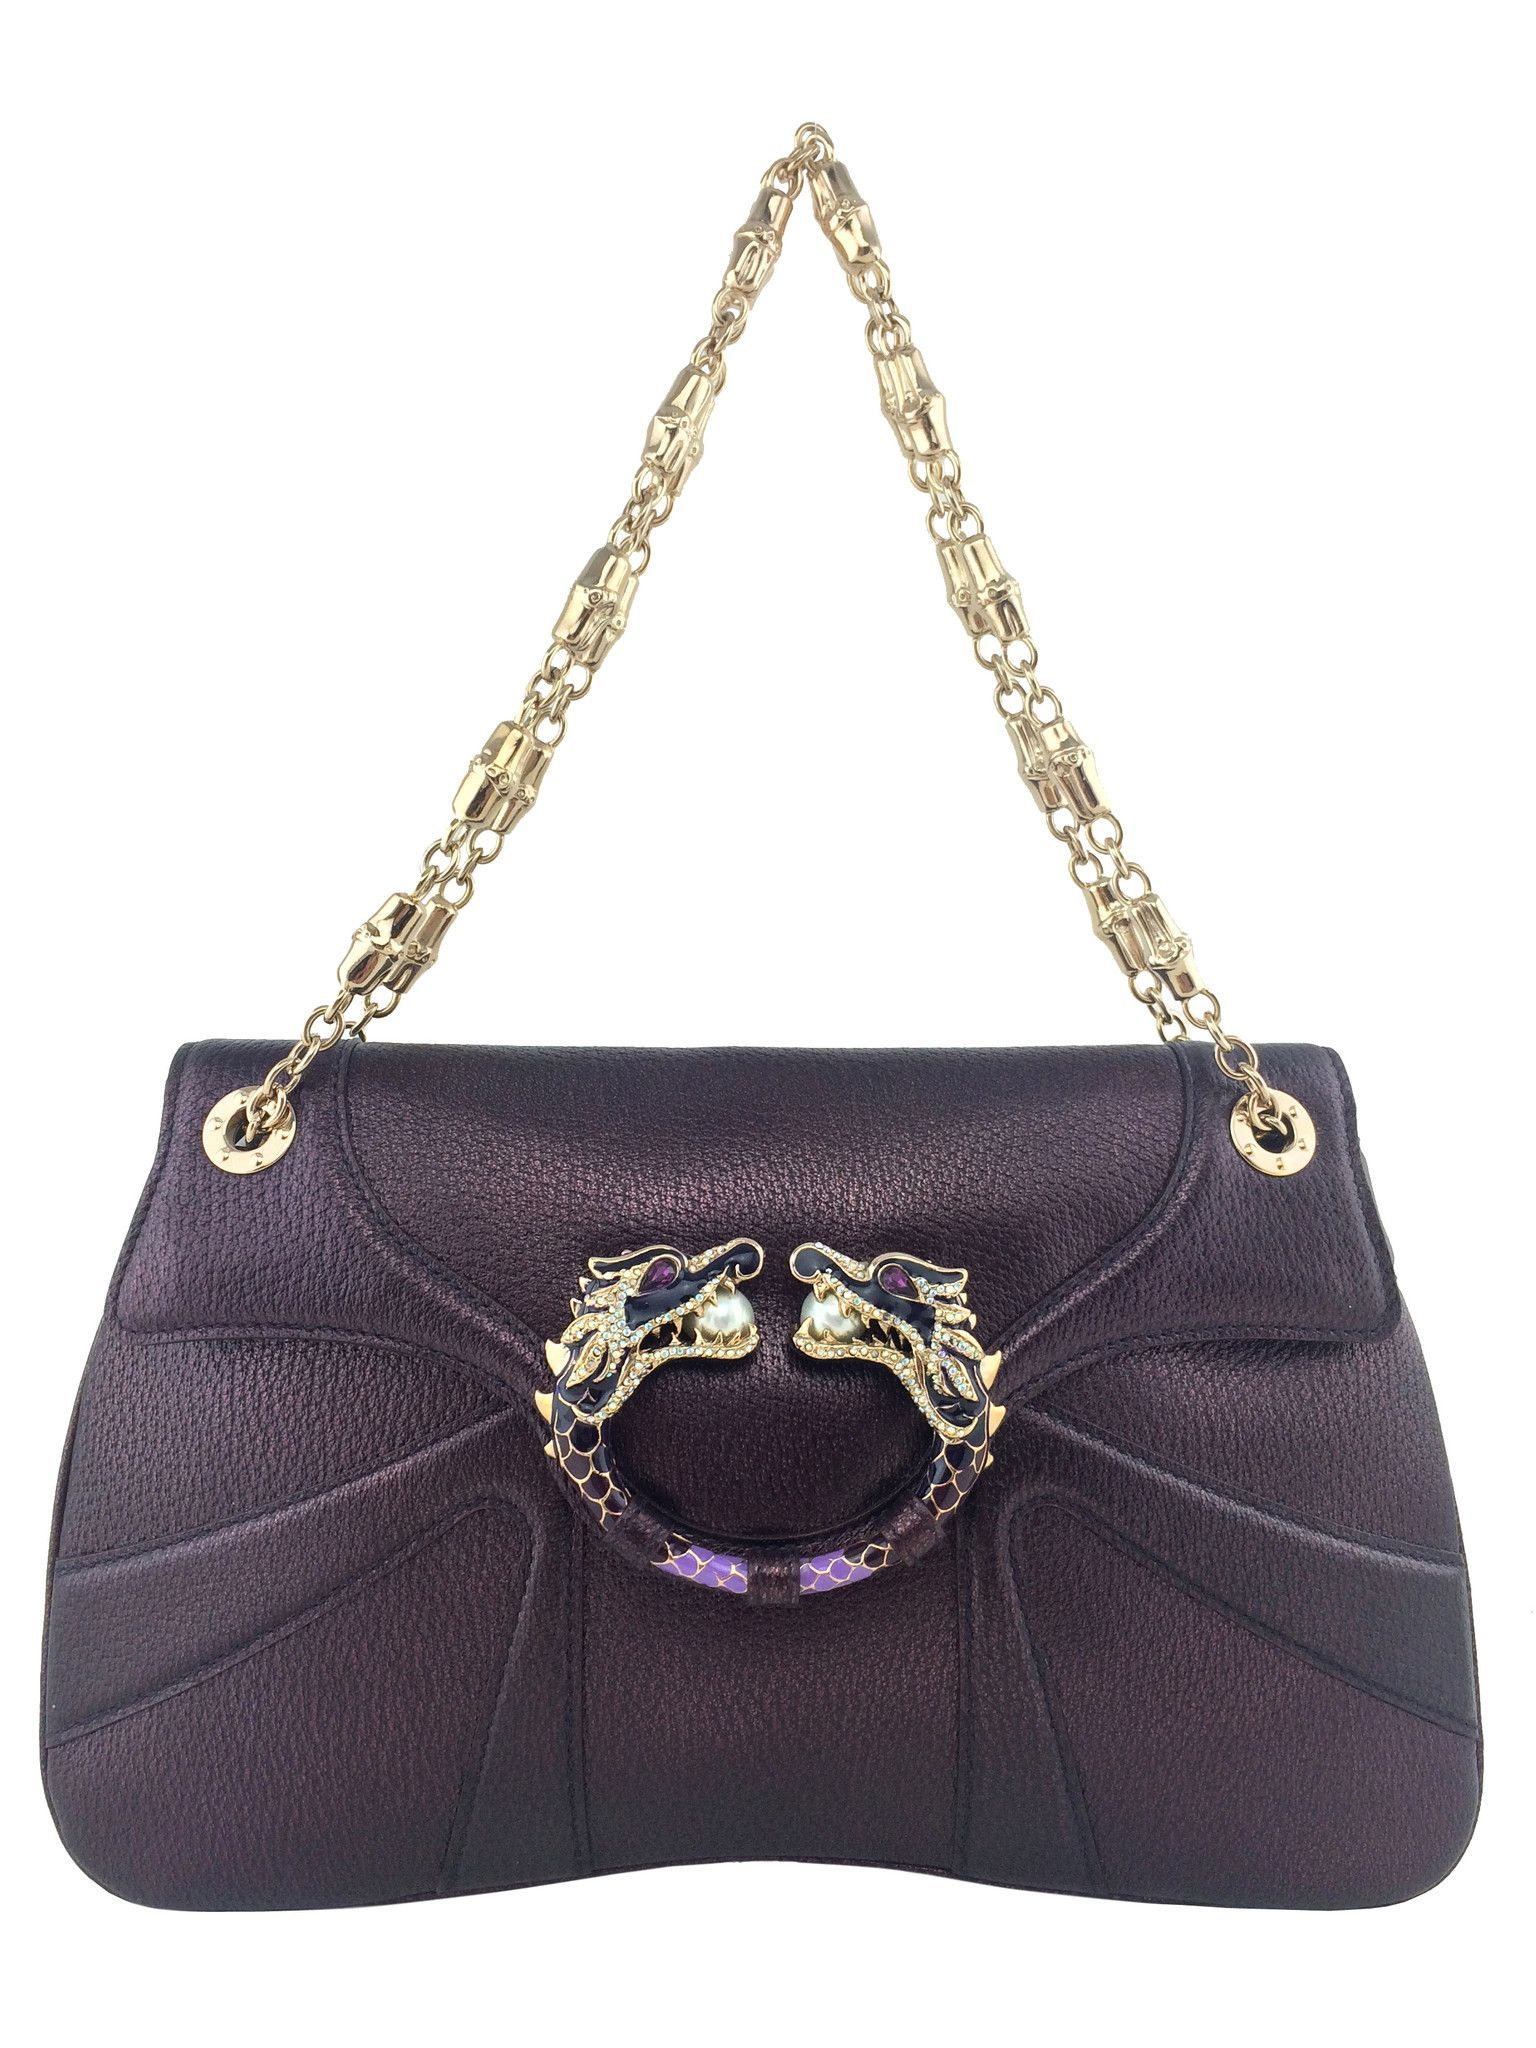 ffd22e20736 Gucci Limited Edition Tom Ford Leather Jeweled Dragon Bag